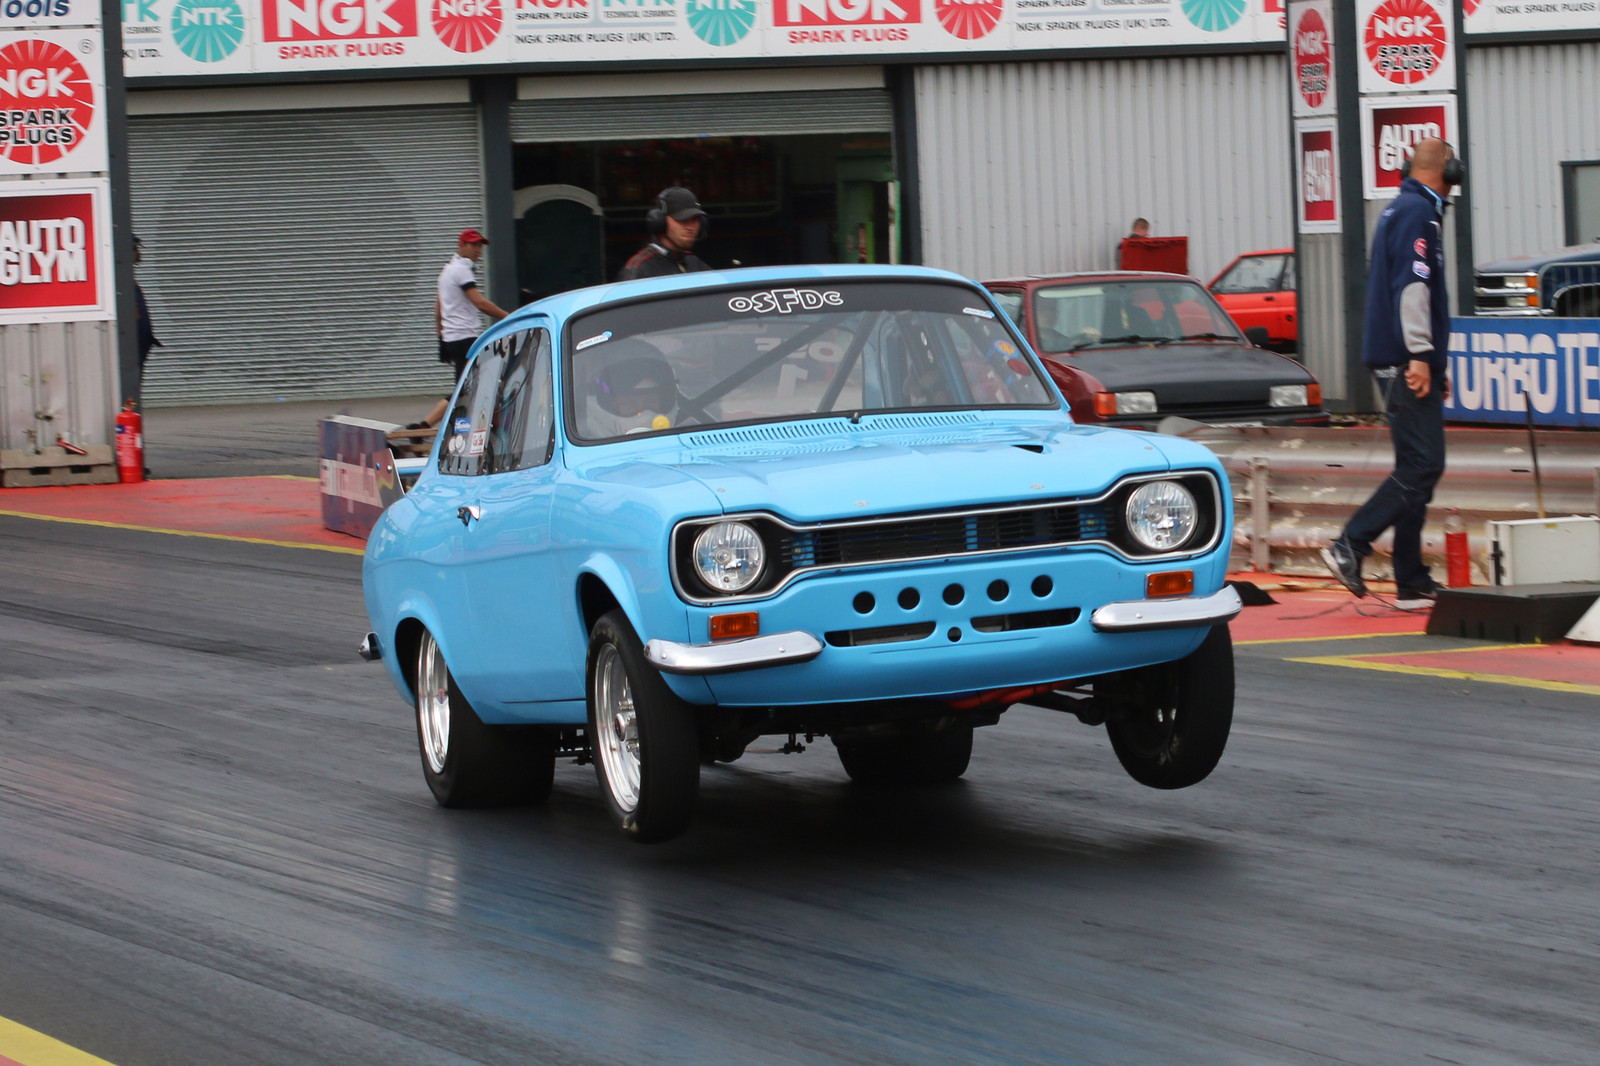 Olympic Blue 1973 Ford Escort Mk1